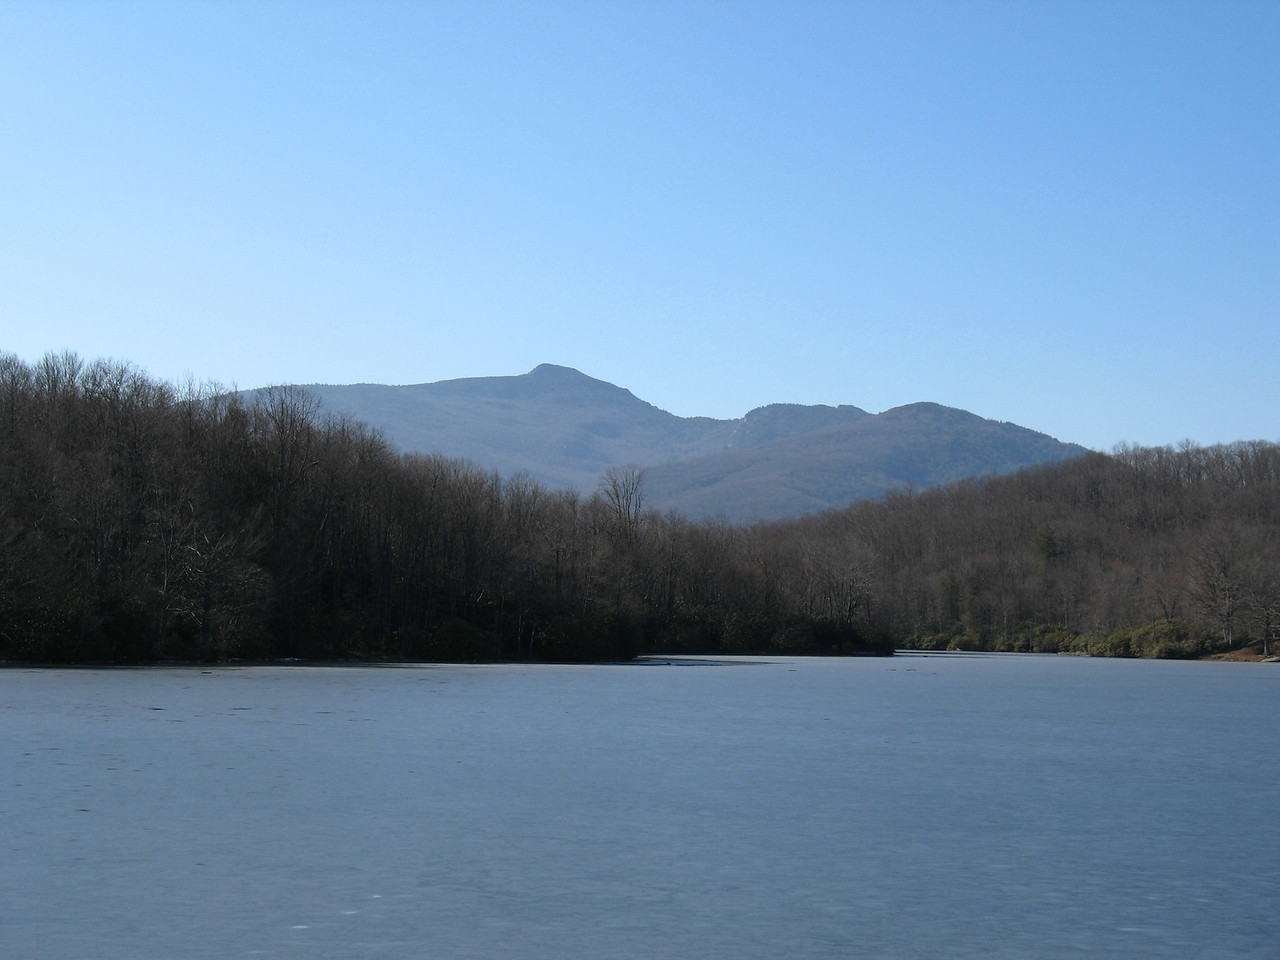 Grandfather Mountain from the east shore of Price Lake.